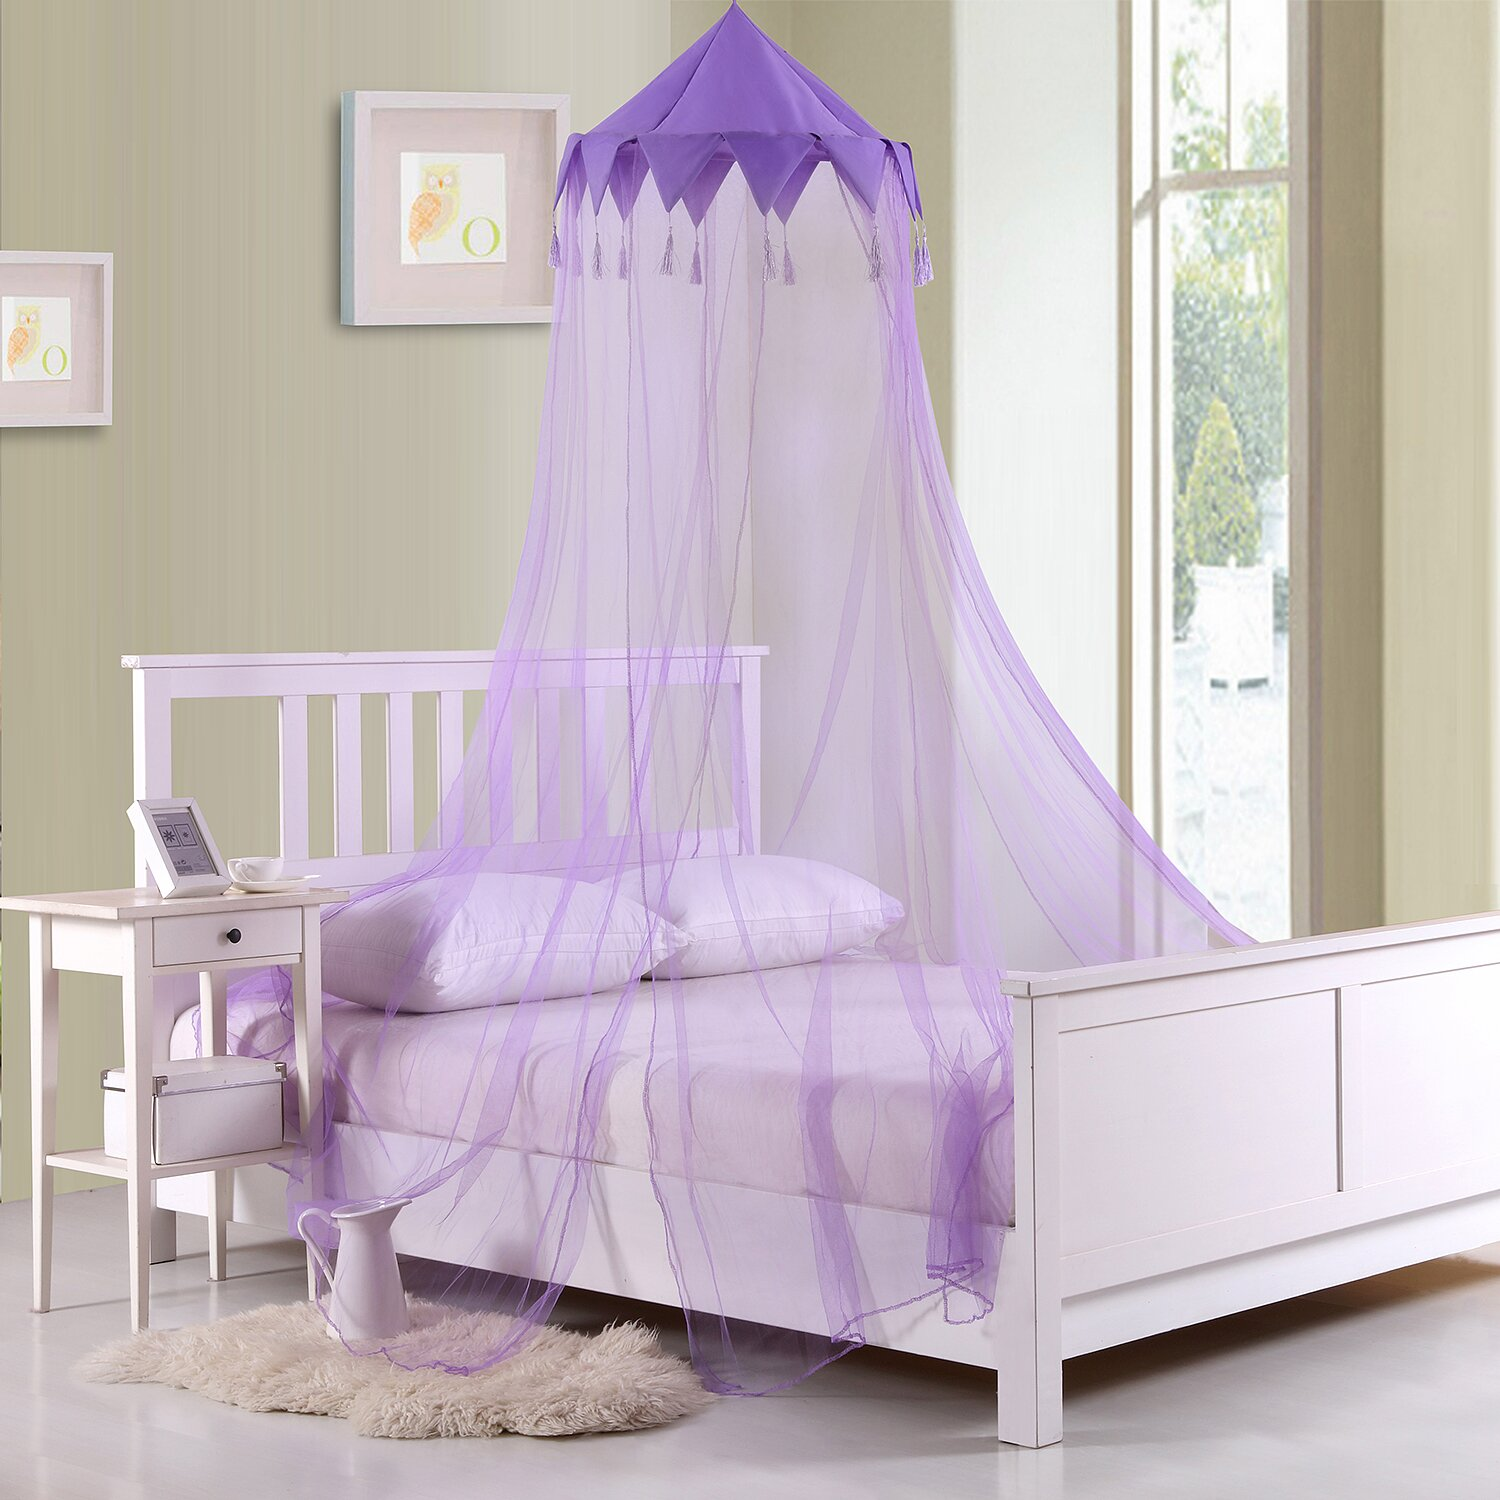 Casablanca kids harlequin kids collapsible hoop sheer bed for Rectangle bed canopy